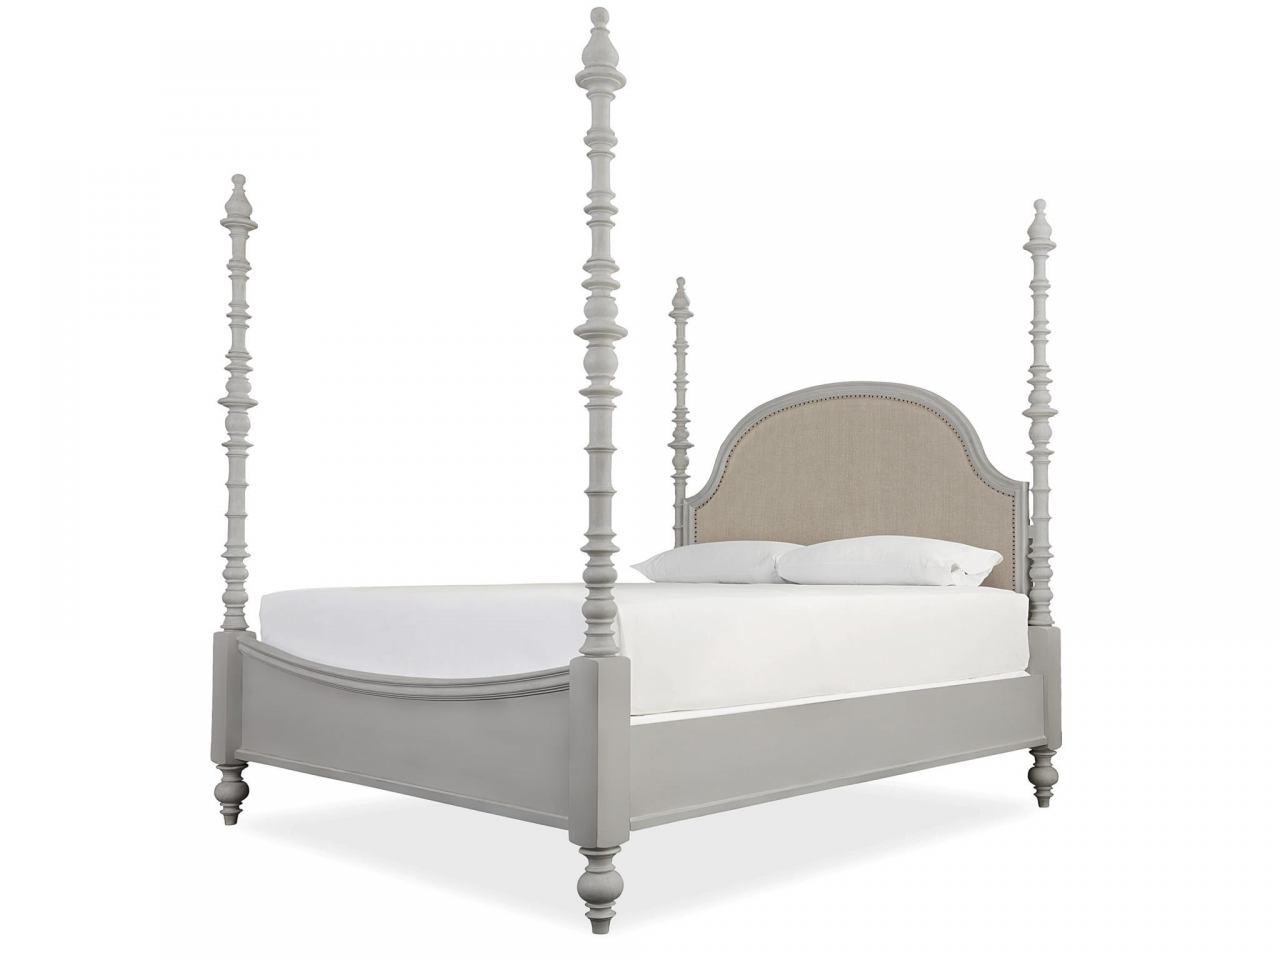 Paula Deen Home Dogwood The Dogwood Bed (Cal King) in Cobblestone 599291B CODE:UNIV20 for 20% Off